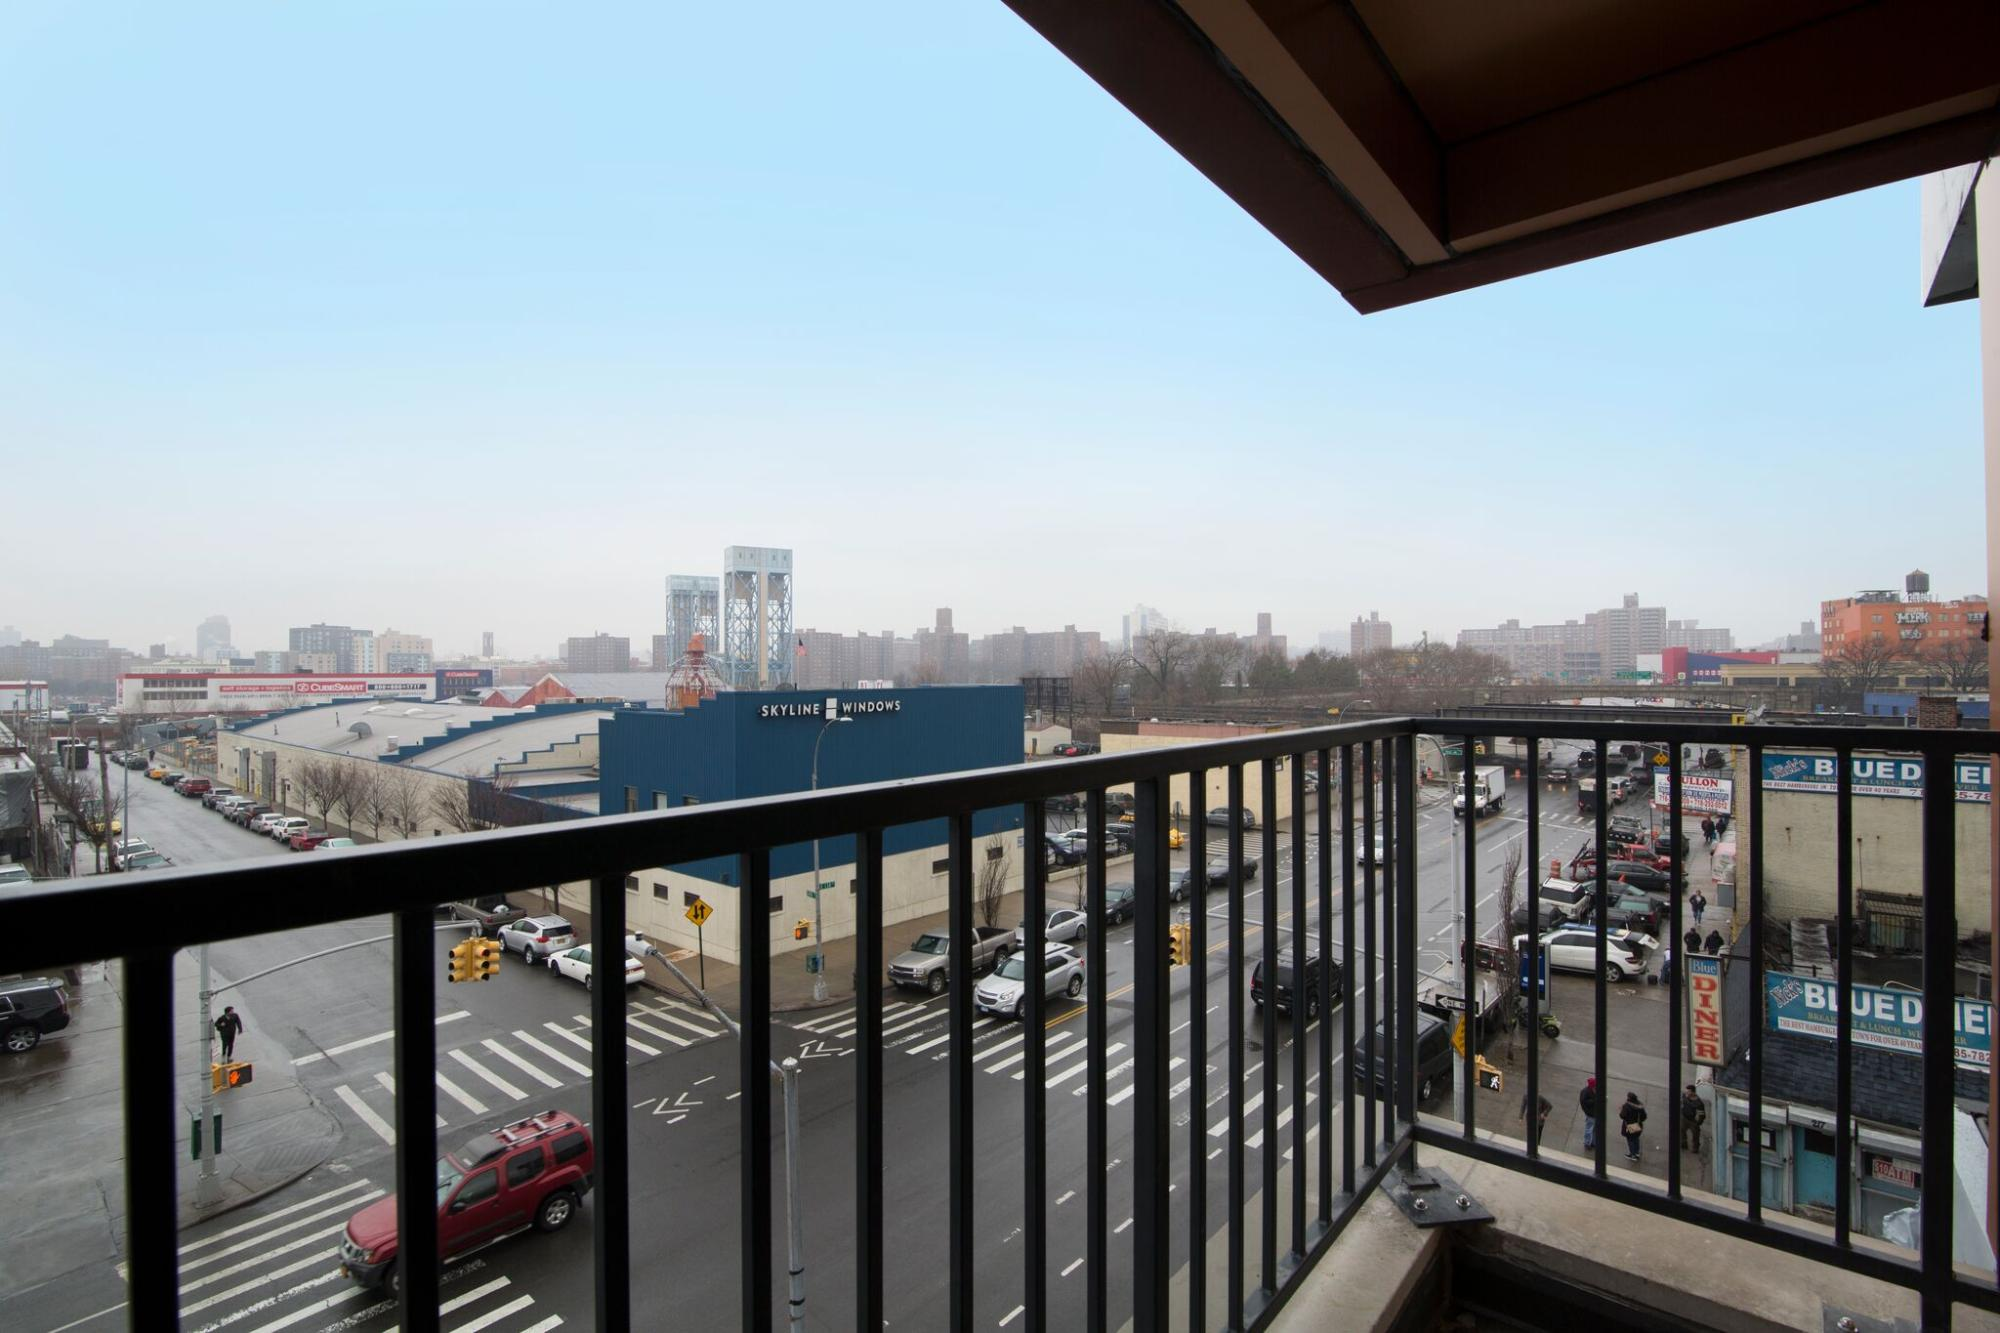 East_138th_Street_221_409_Balcony_preview.jpeg